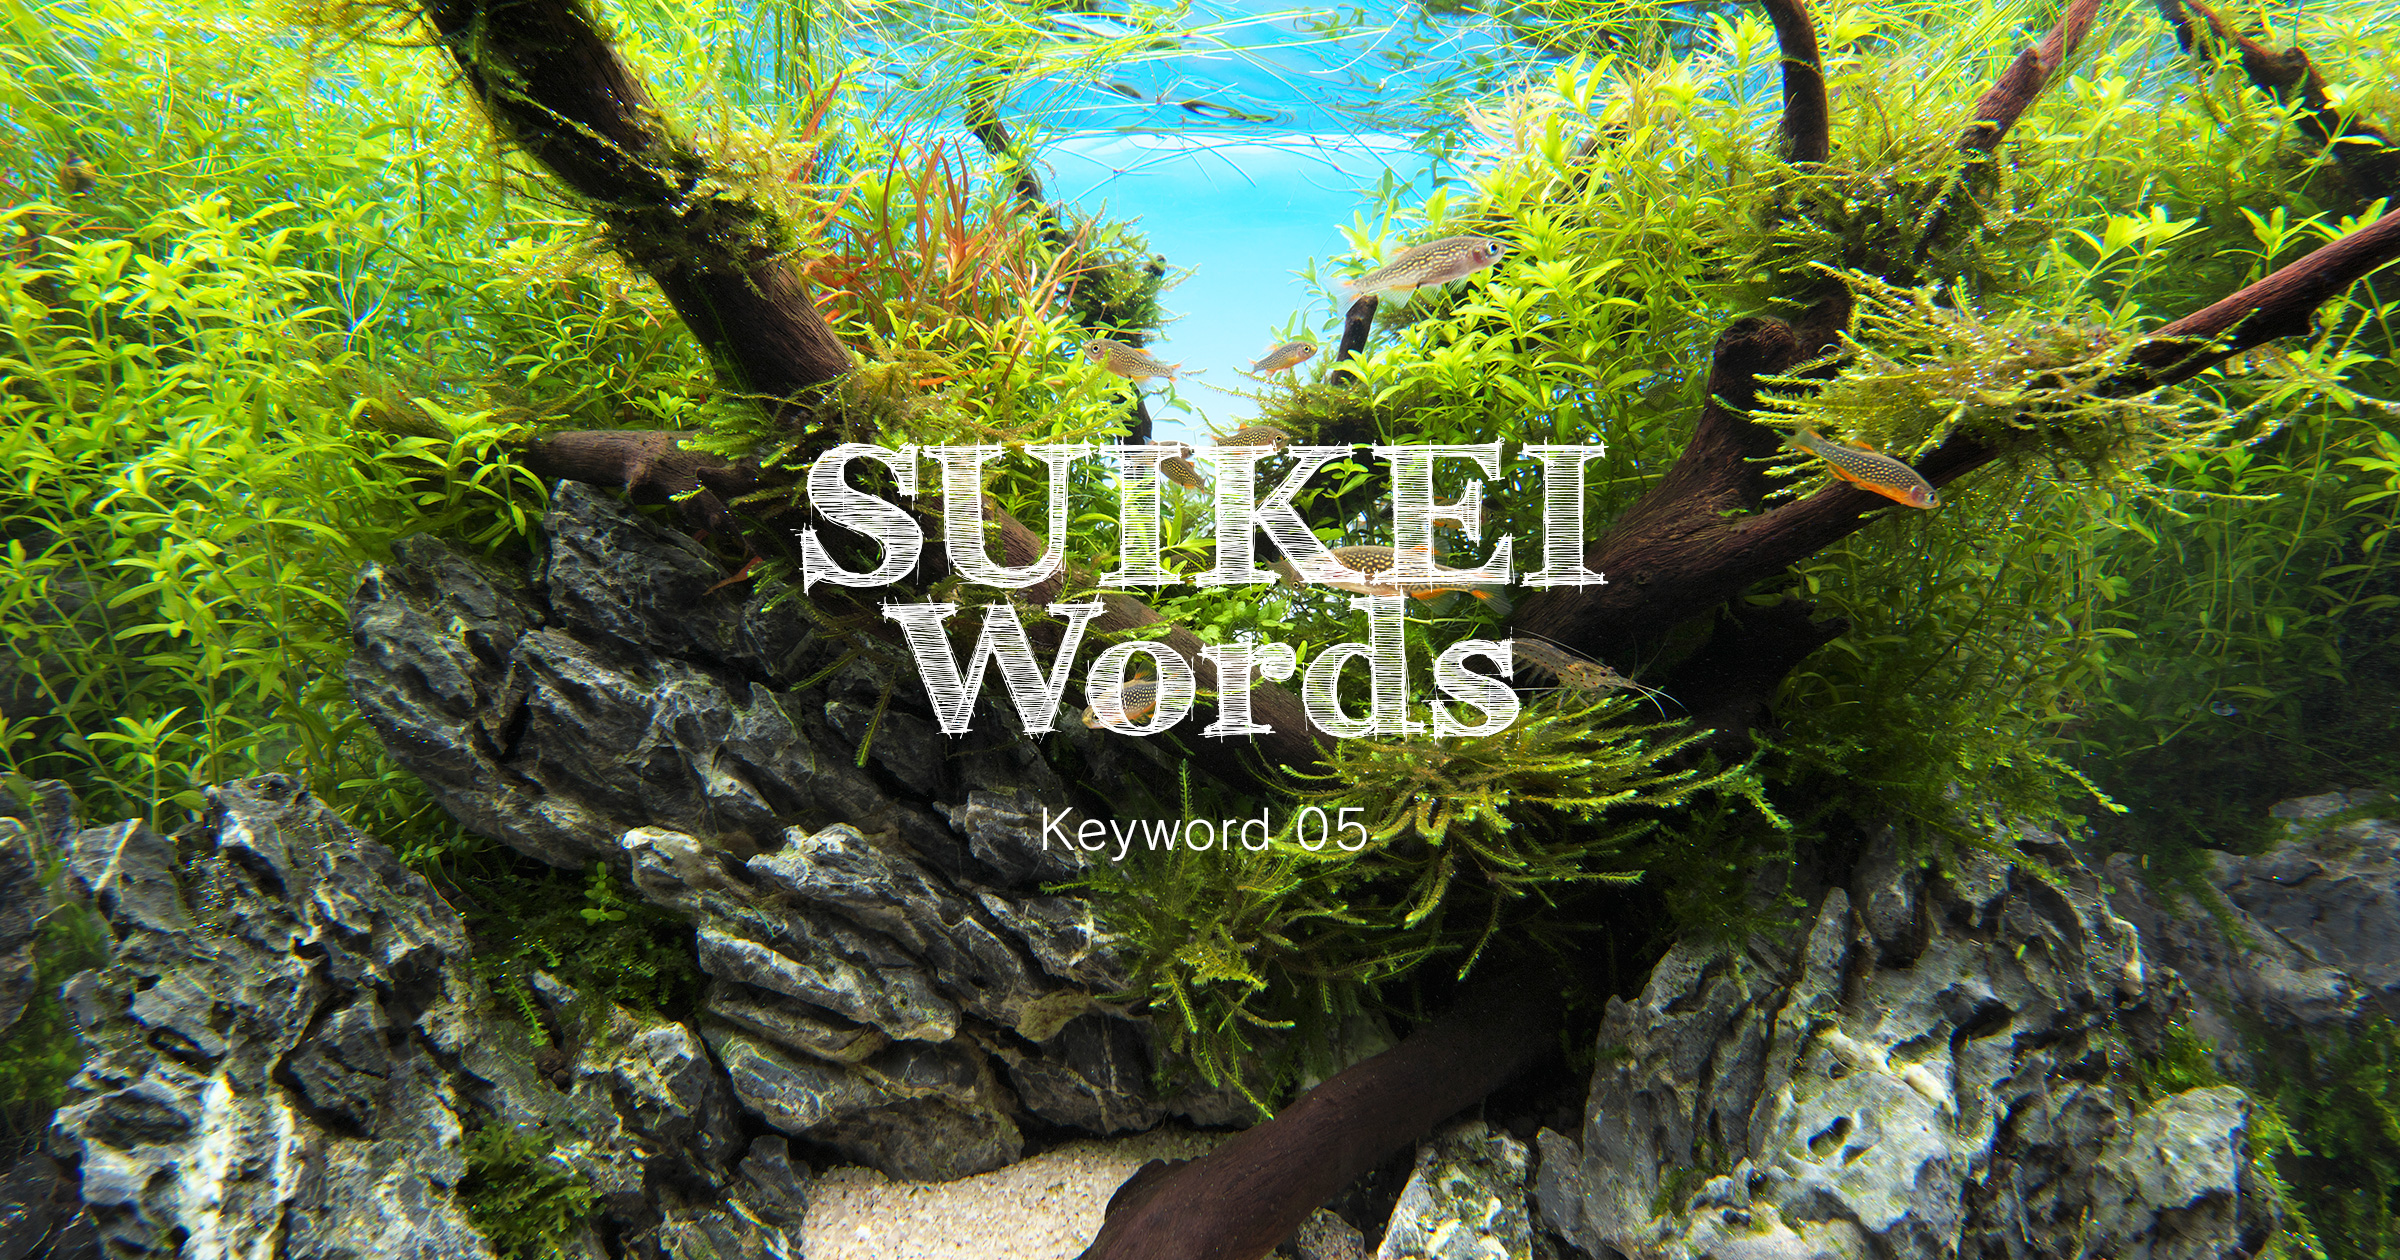 SUIKEI WORDS Keyword 05 'Techniques to make small layouts look bigger'